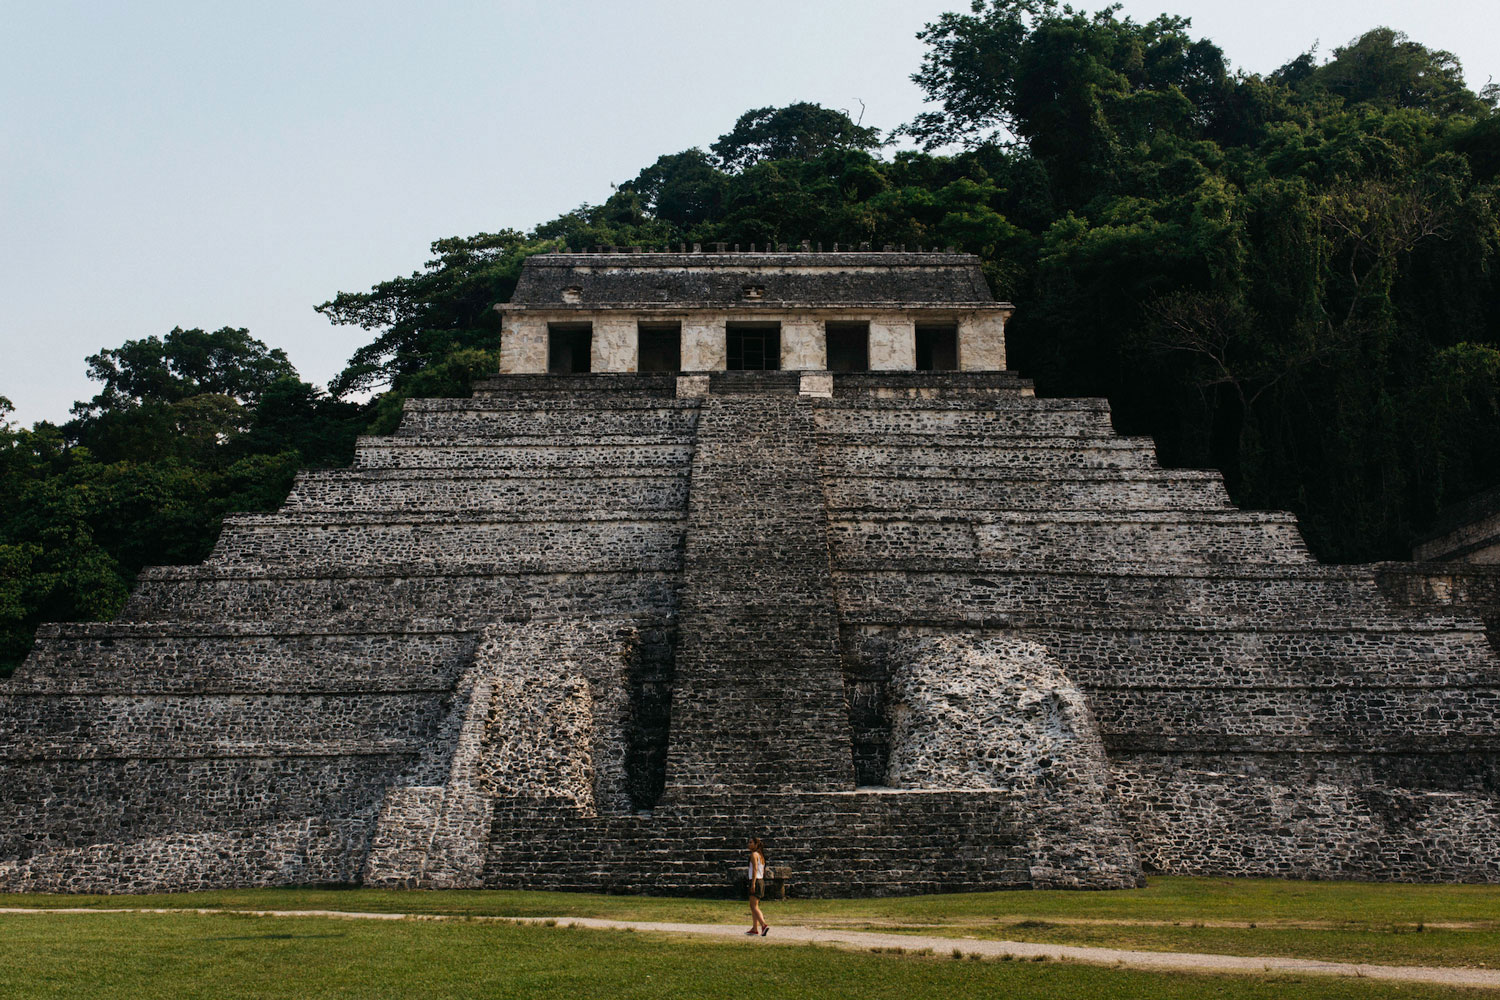 Hammocks_and_Ruins_Town_Villages_Chiapas_Lakes_Rivers_Jungles_Highlands_Ruins_Palenque_Maya_City_26.jpg